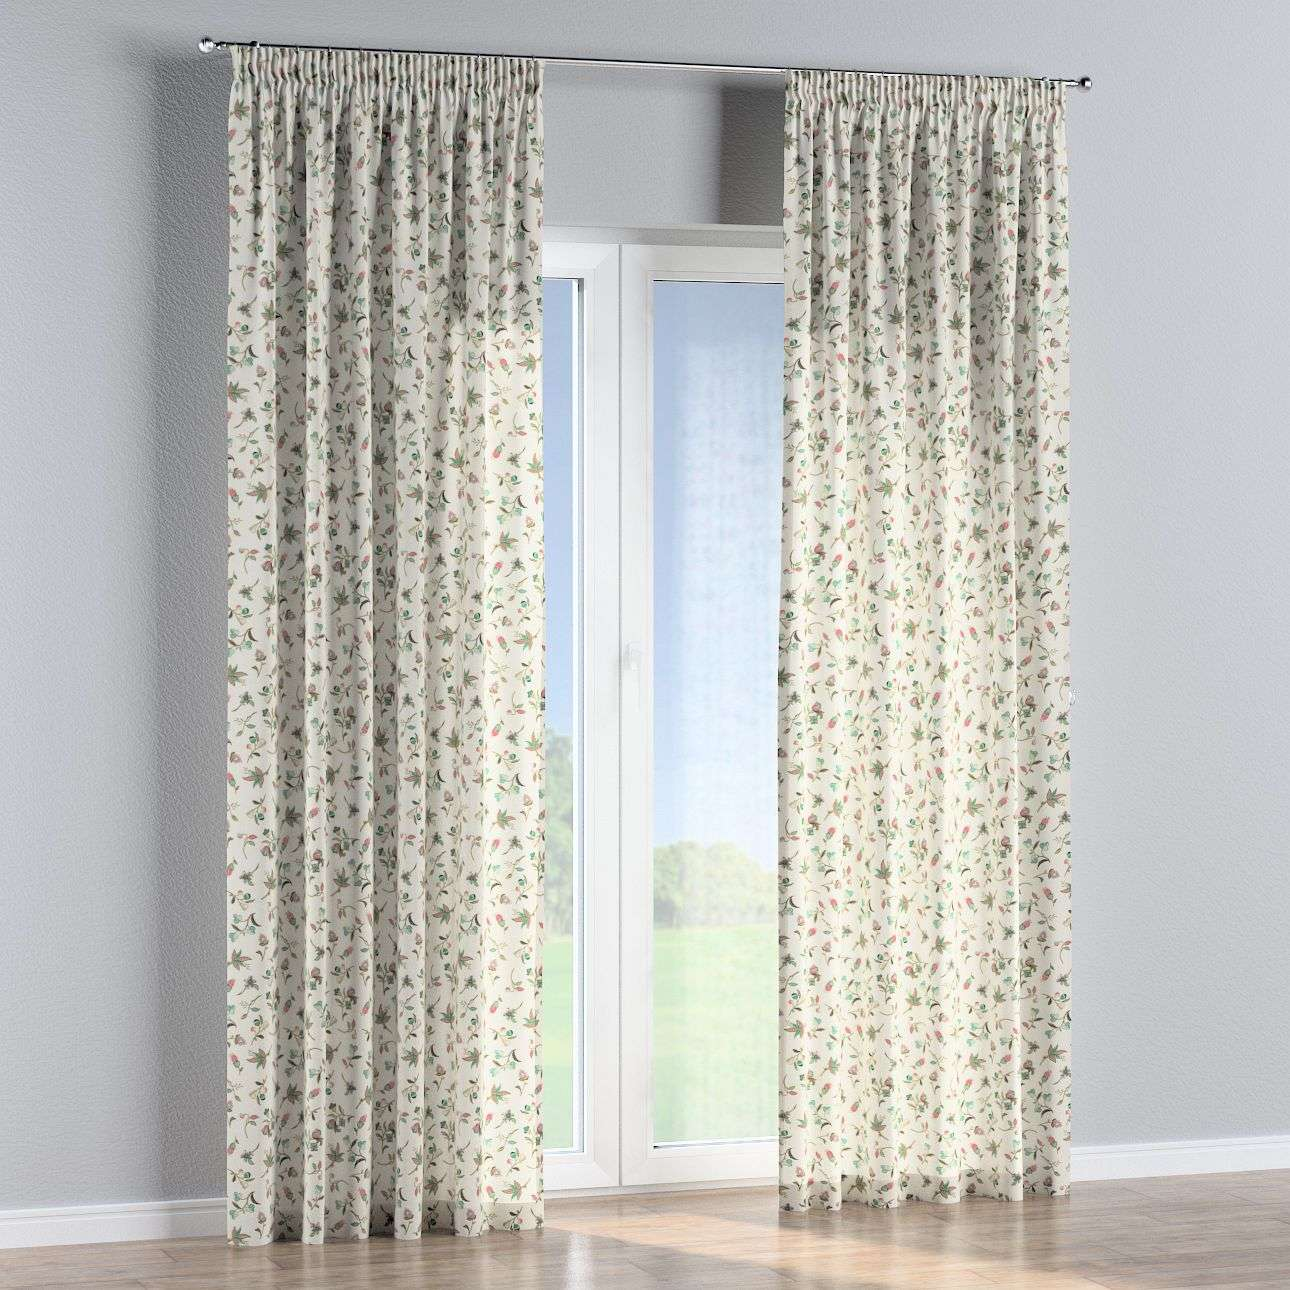 Pencil pleat curtains 130 x 260 cm (51 x 102 inch) in collection Londres, fabric: 122-02